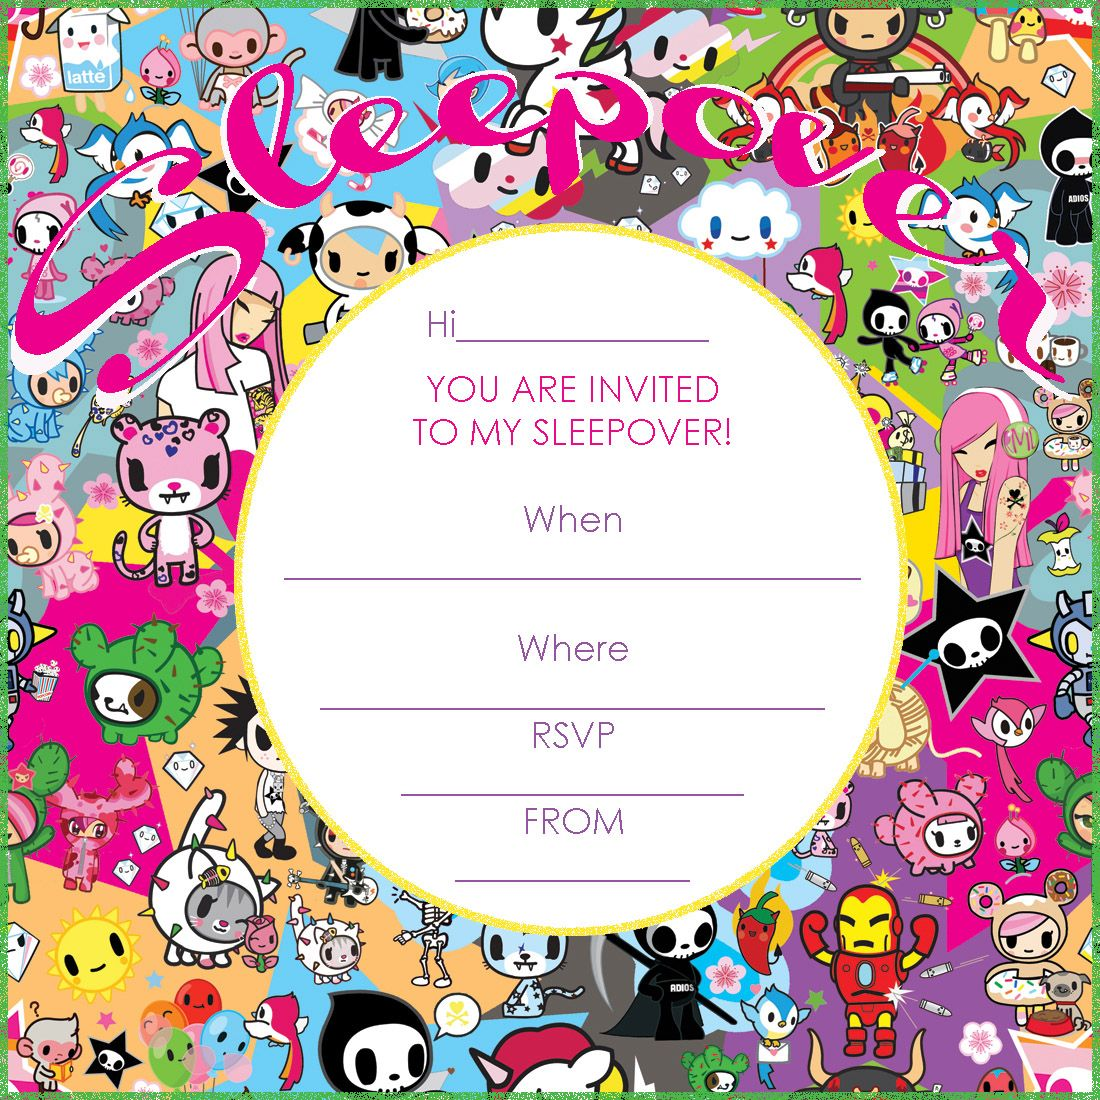 tokidoki birthday party printable tokidoki party invitation tokidoki birthday party printable tokidoki party invitation for a sleepover party click